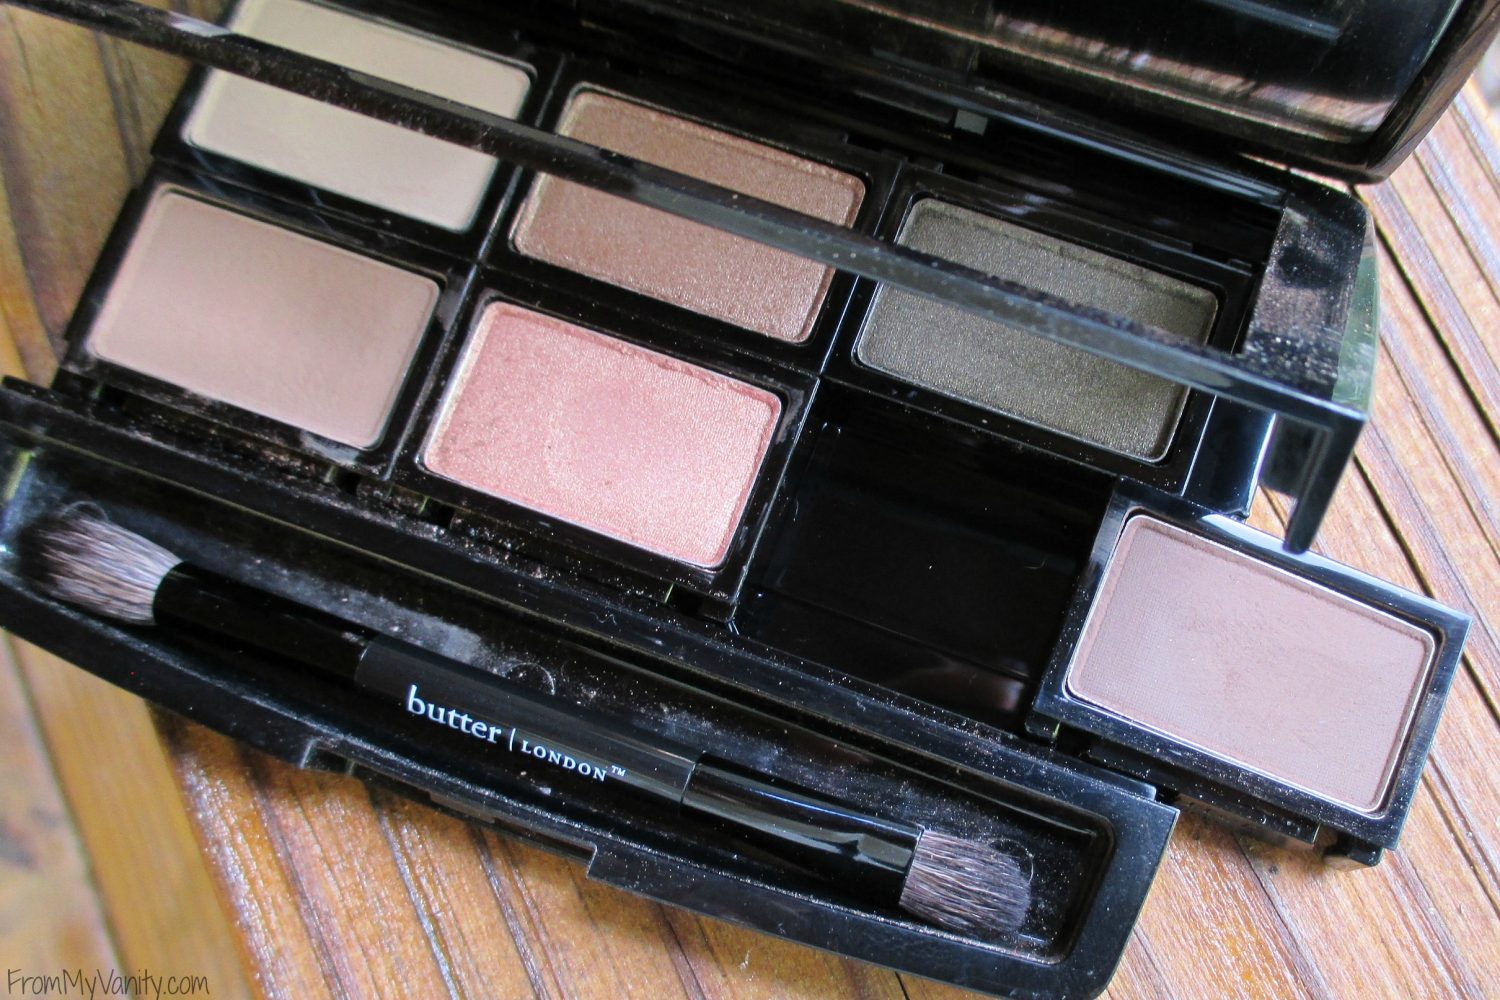 Butter London NEW Shadow Clutch Palette // Switch Eyeshadow Colors // FromMyVanity.com